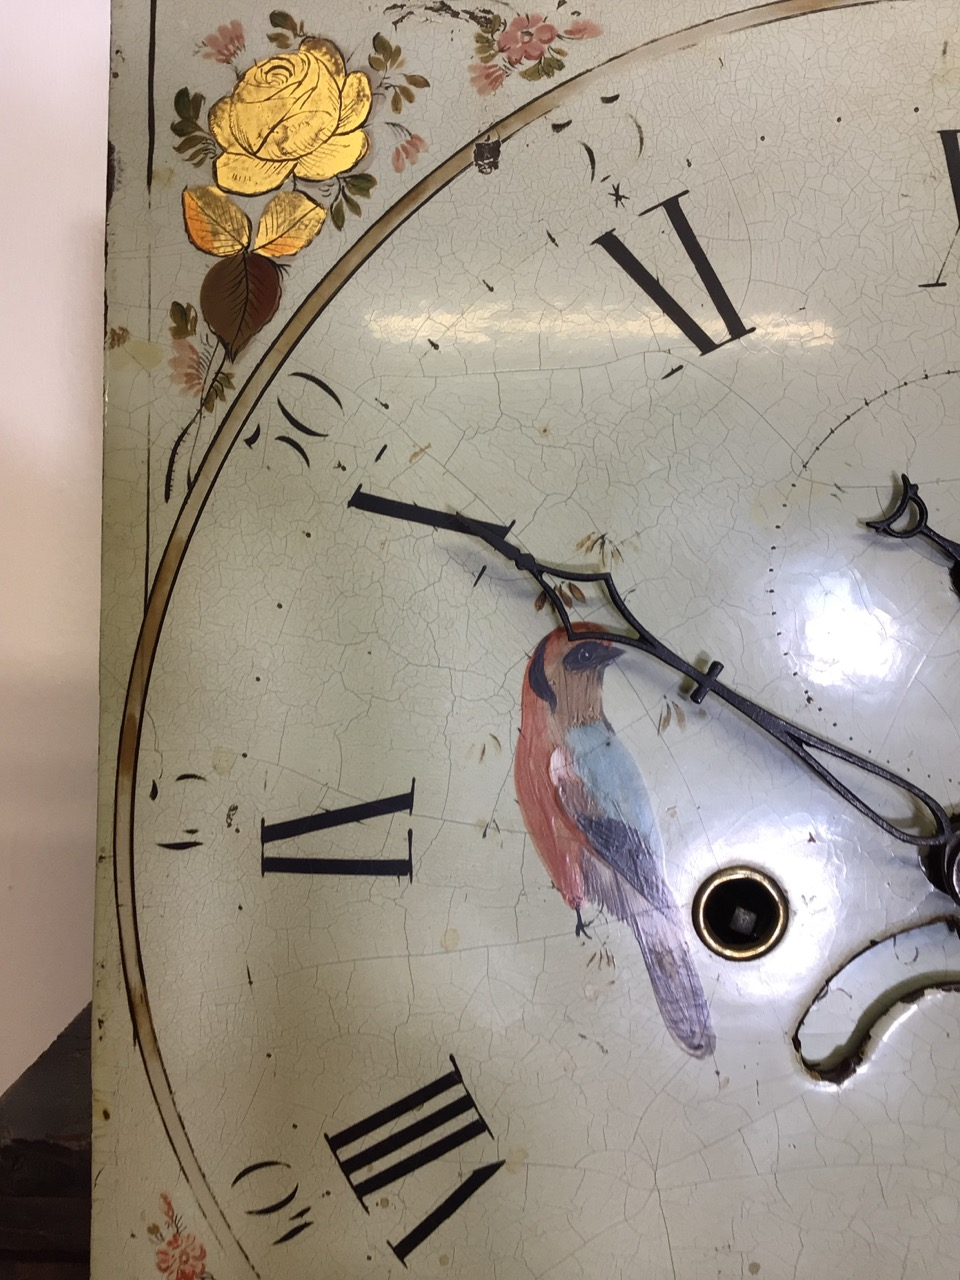 An 8 day mahogany longcase clock with weights and pendulum and key with painted face depicting birds - Image 7 of 10